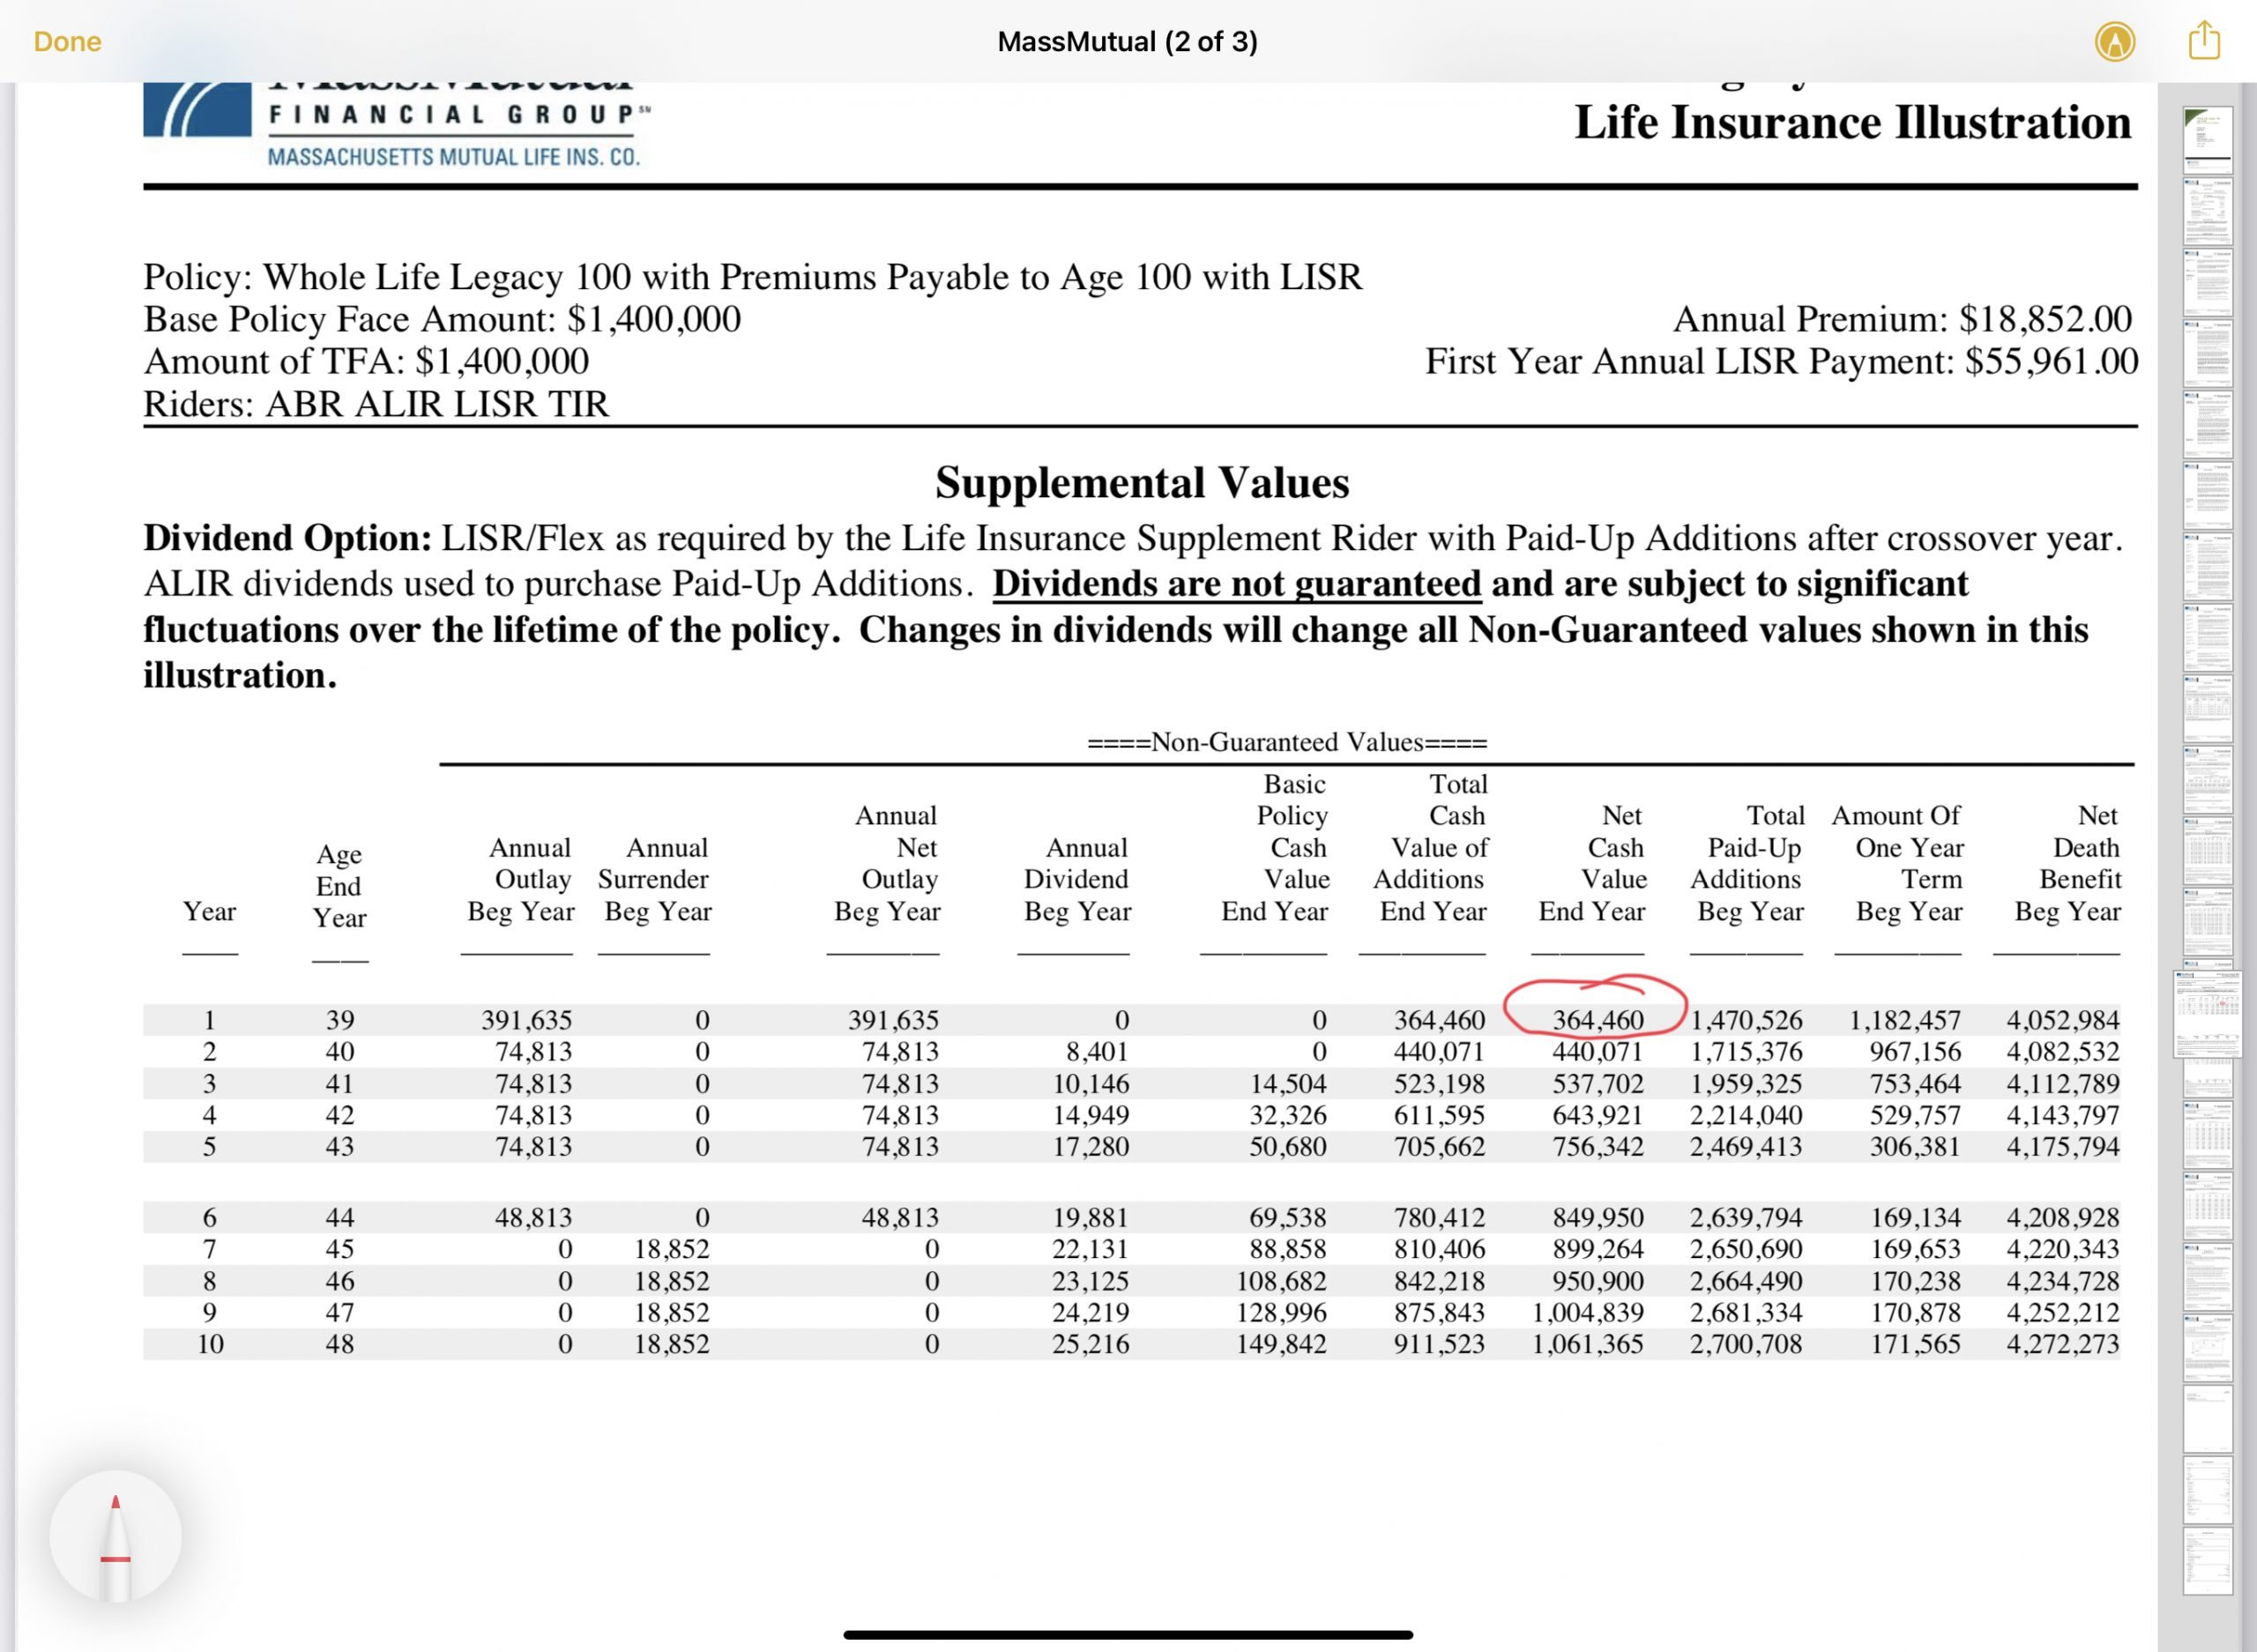 MassMutual Whole Life First Year Cash Value